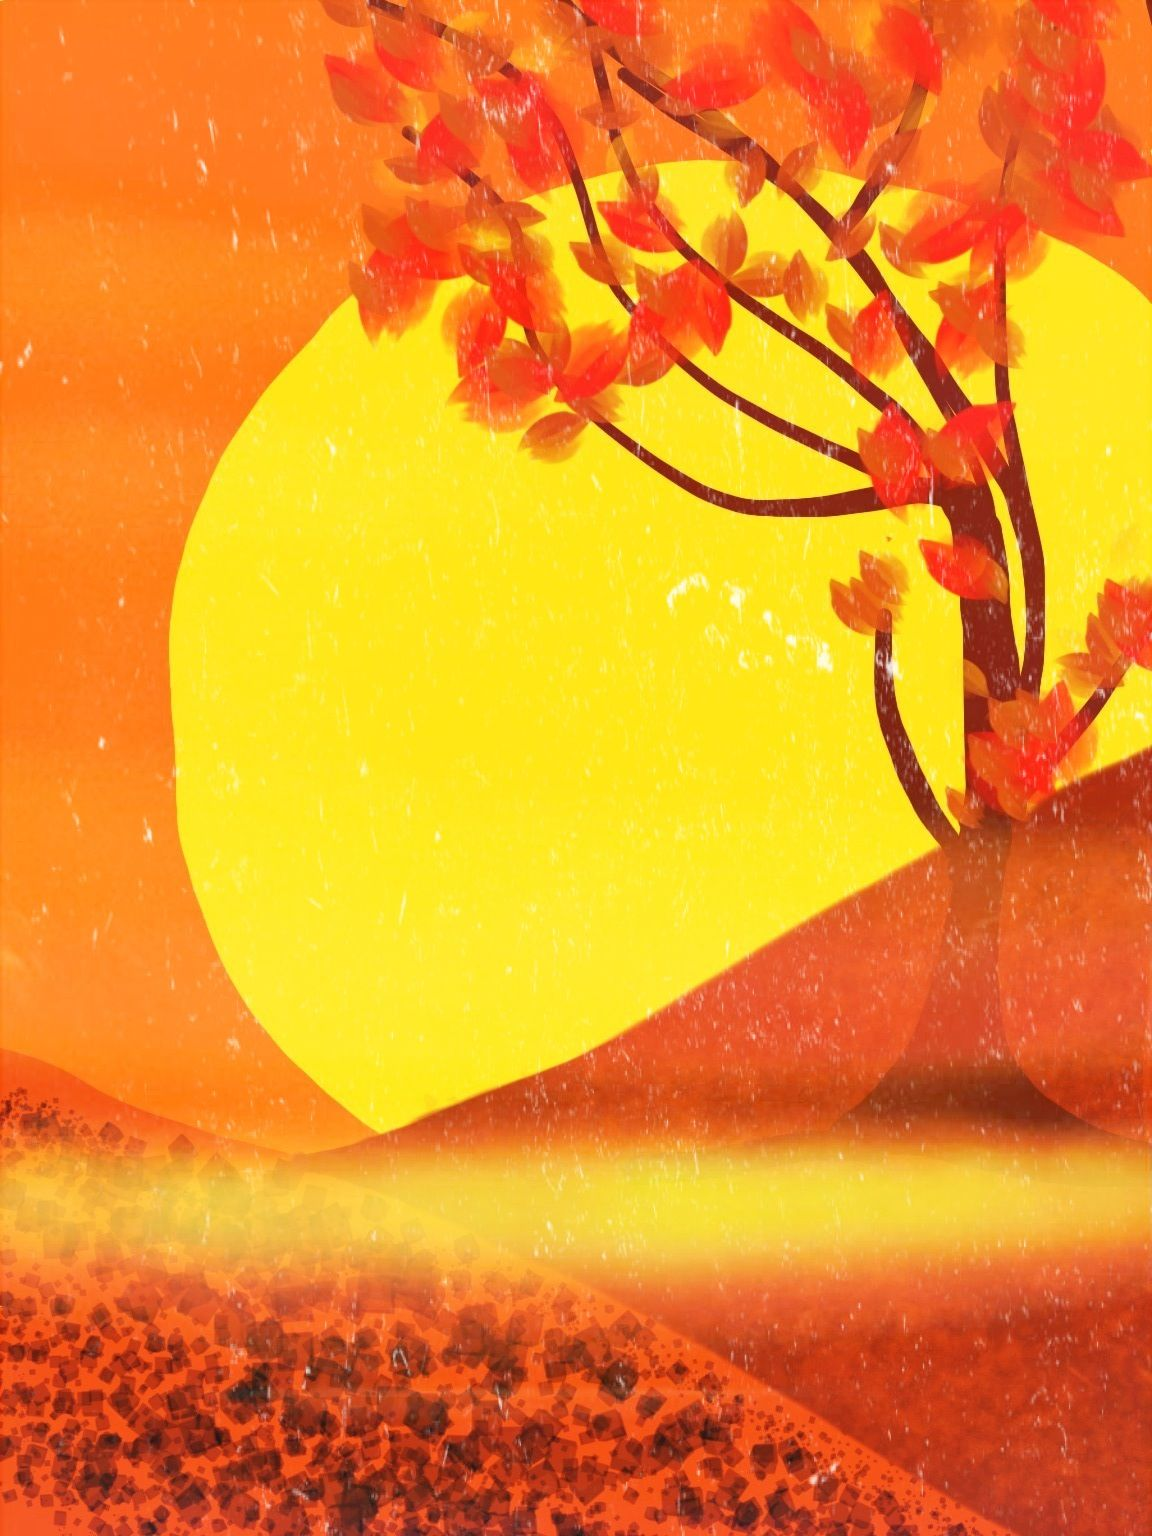 Red Yellow Sun Sunset Warm Orange Tree Drawing